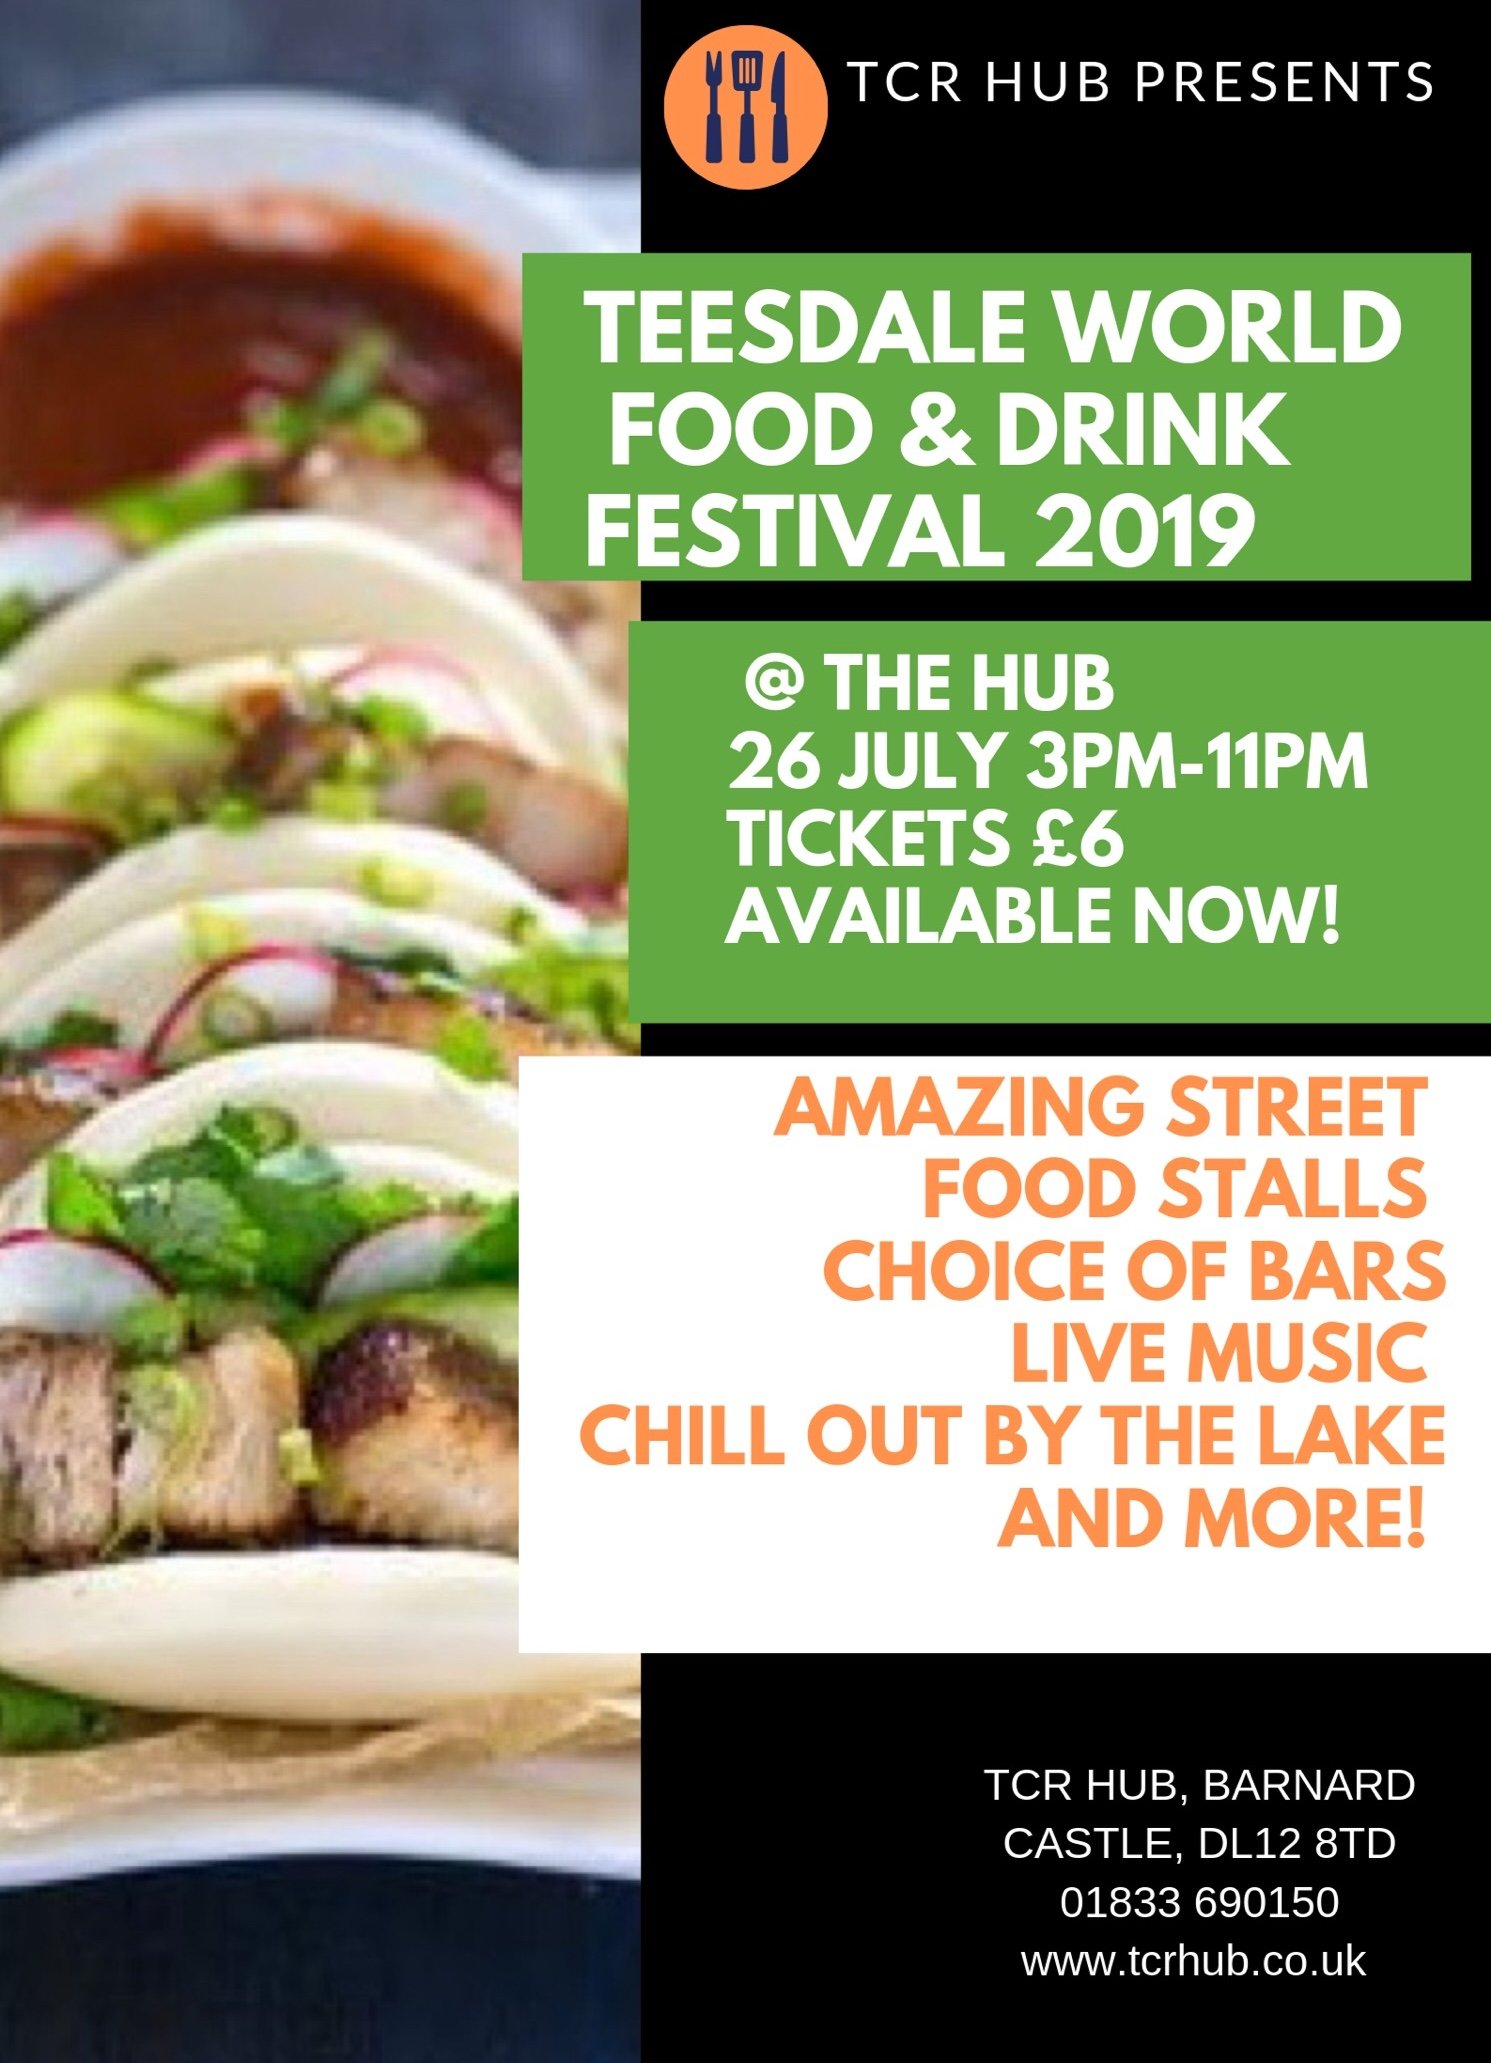 Teesdale World Food & Drink Festival